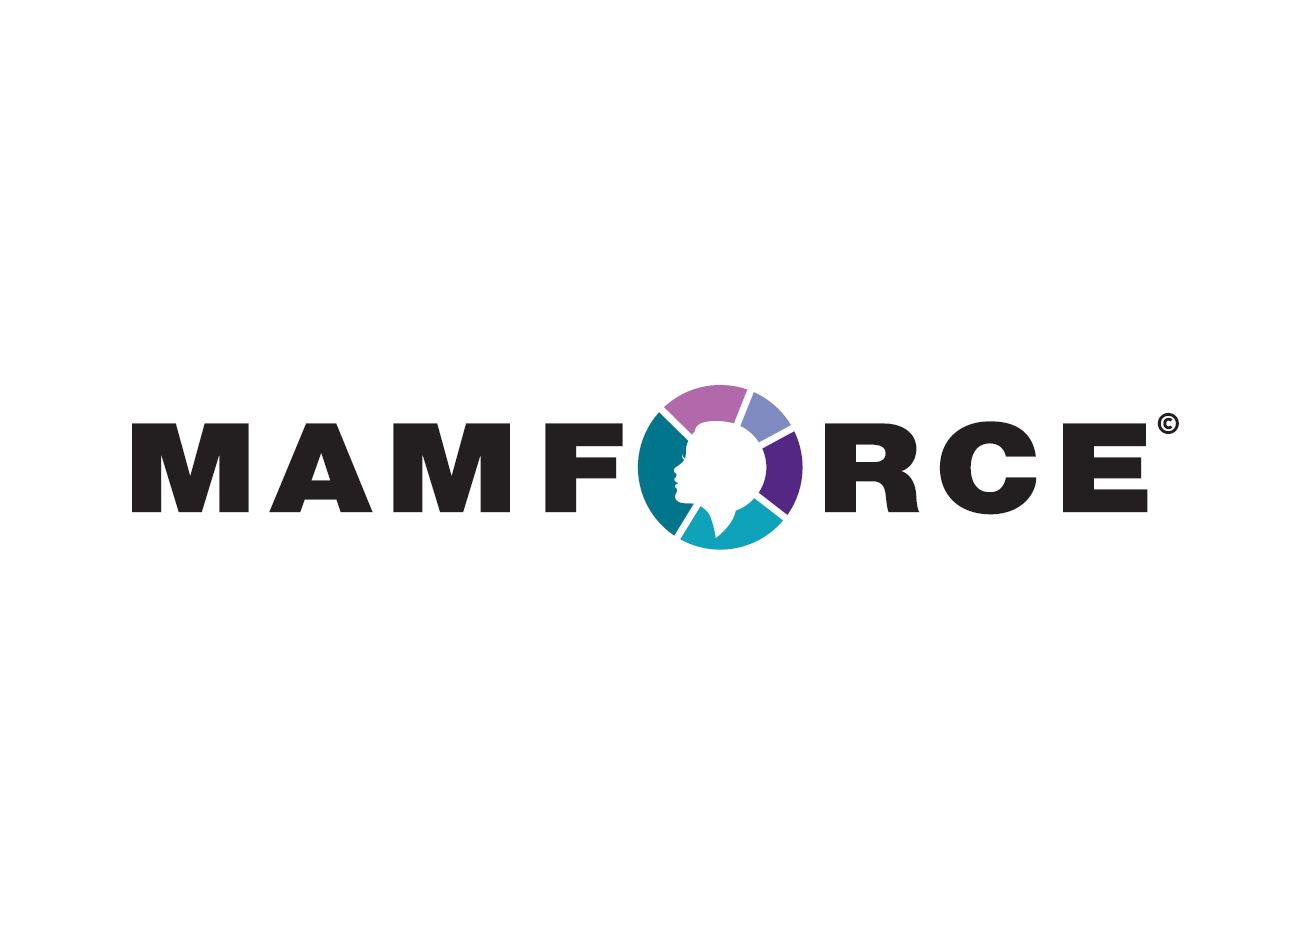 Mamforce recognition